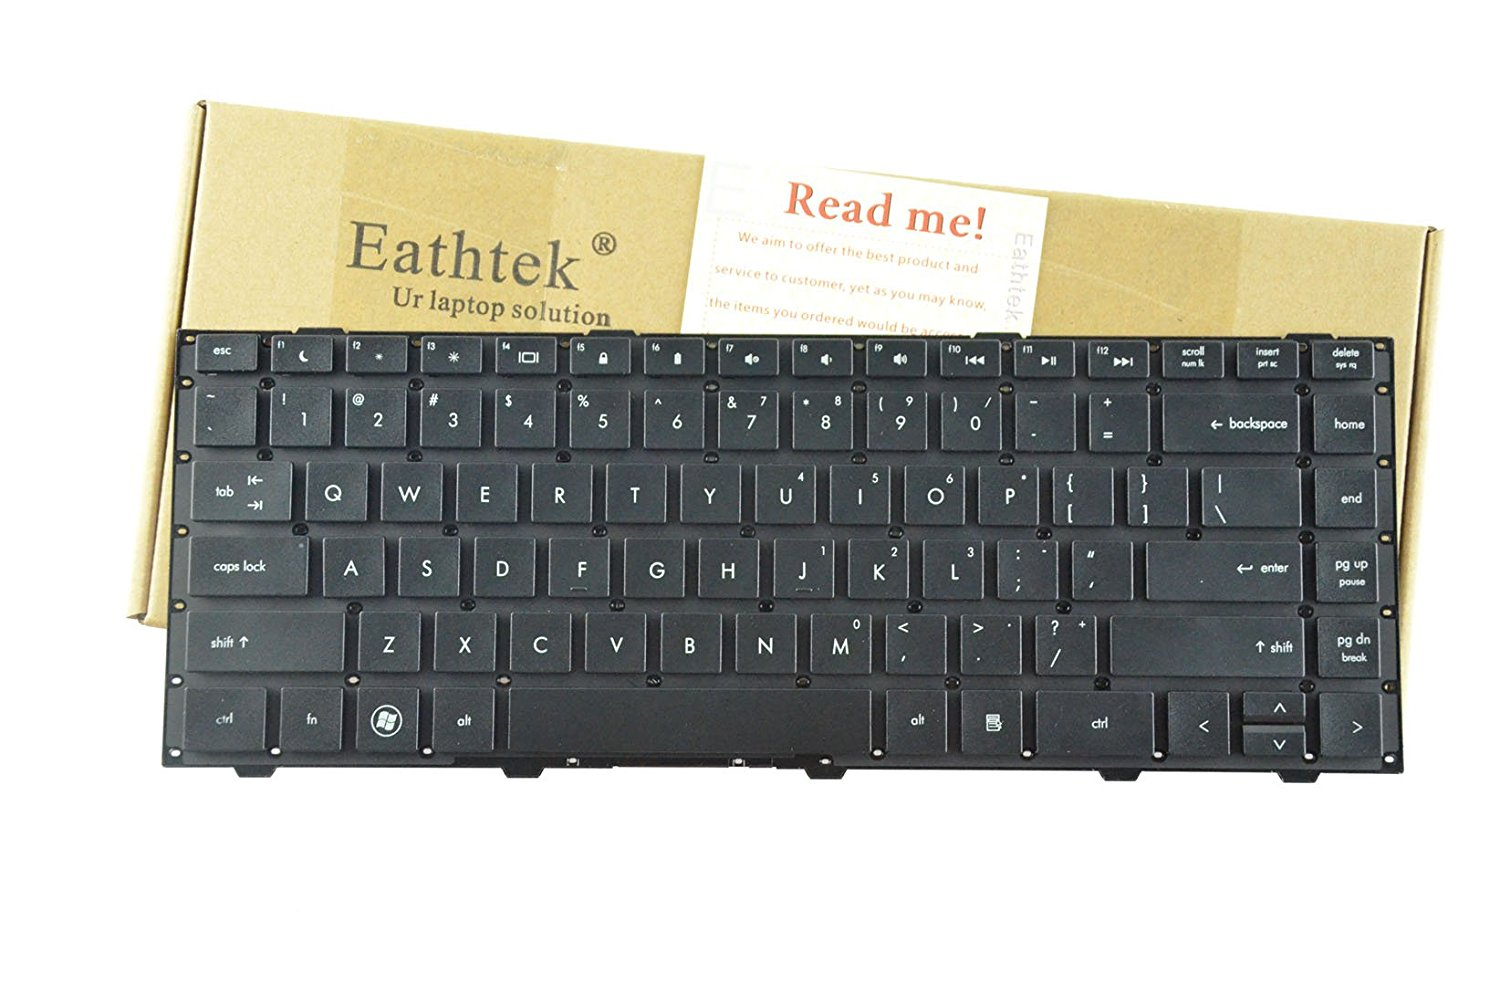 Eathtek Replacement Keyboard without Frame for HP Probook 4440s 4445s 4446s series Black US Layout, Compatible with part numbers 683657-001 702238-001 701282-001